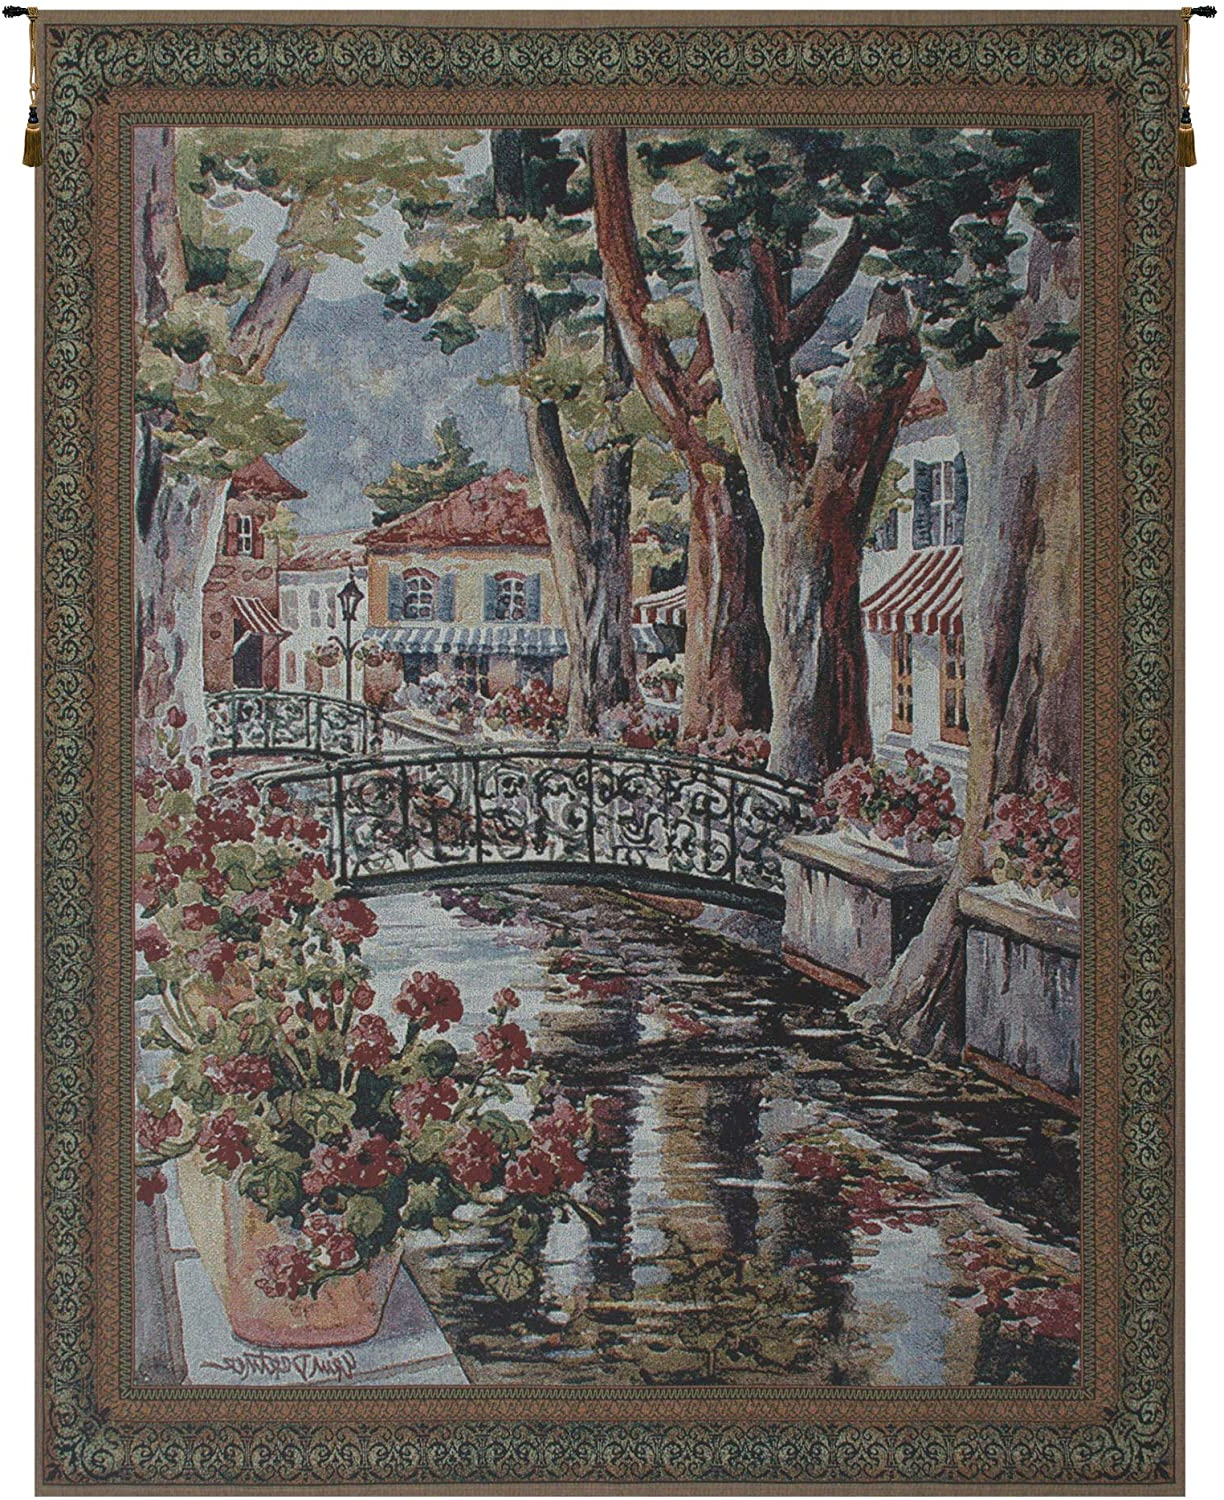 Preferred Blended Fabric Classic French Rococo Woven Tapestries With Regard To Amazon: French Village Tapestry Wall Art: Home & Kitchen (View 15 of 20)